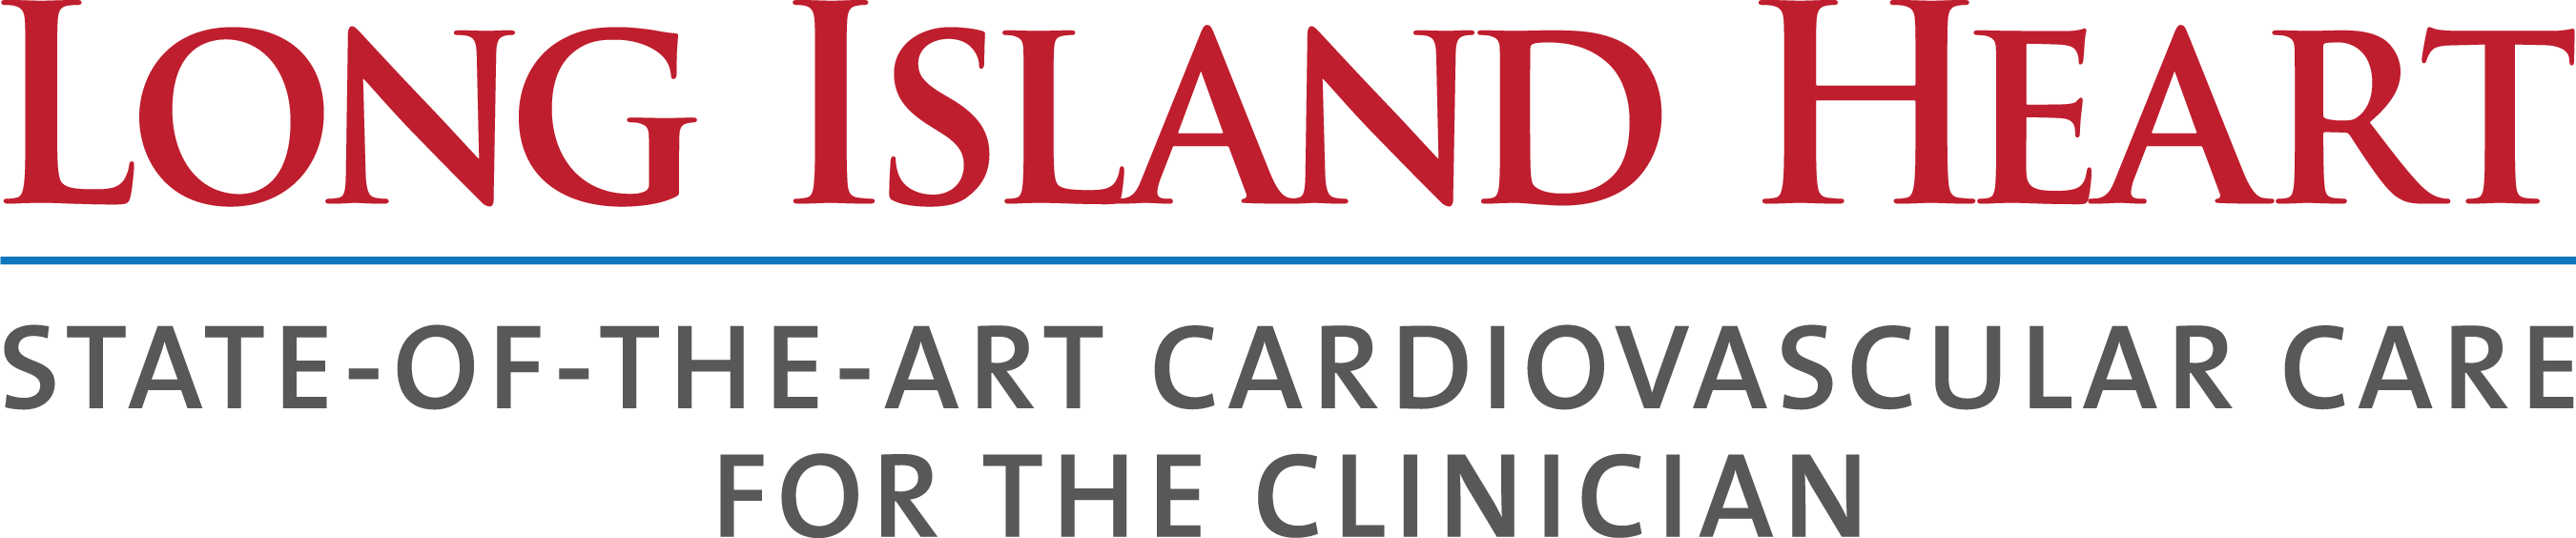 Long Island Heart event logo